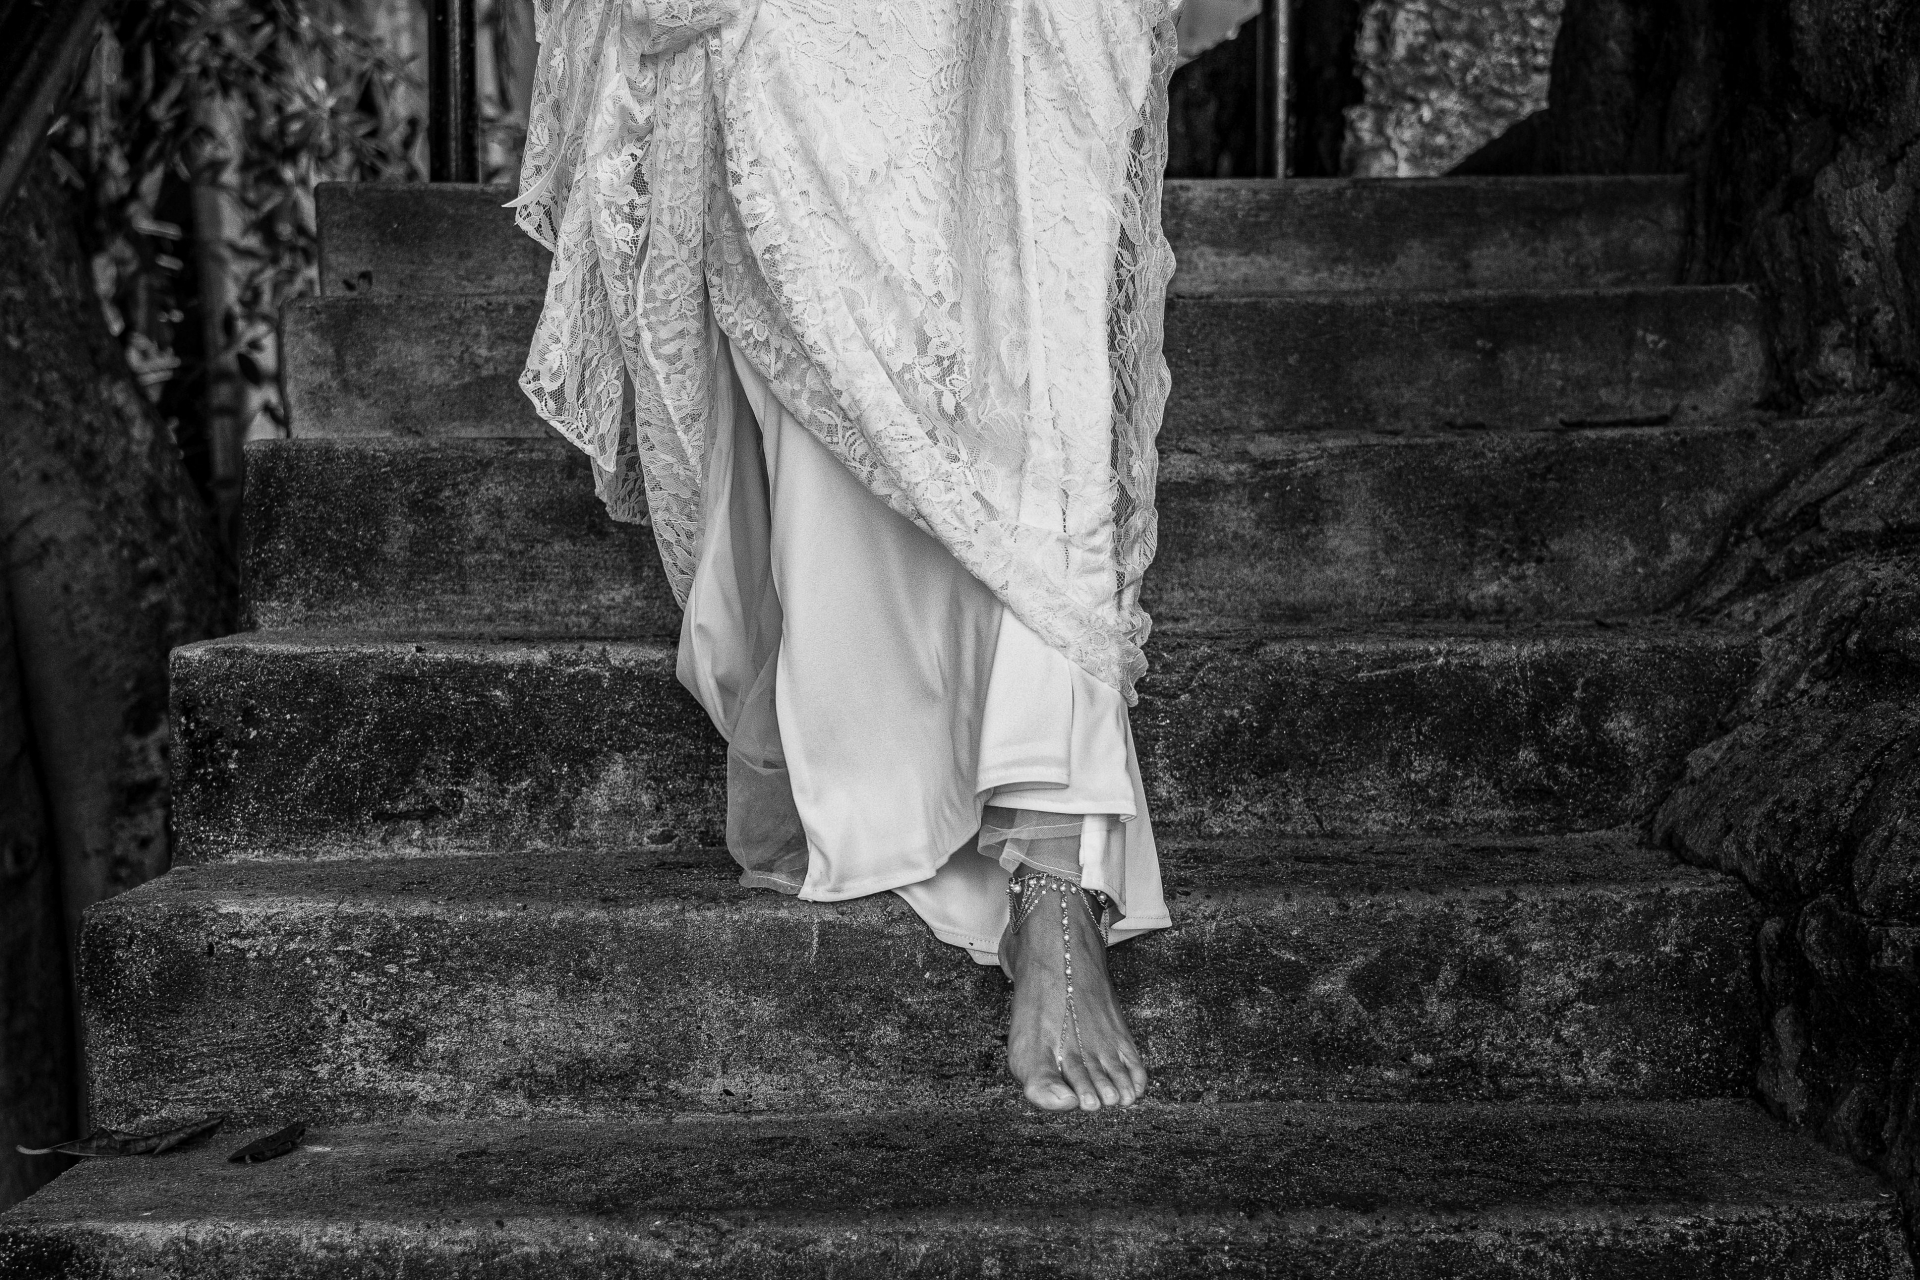 Conchas Chinas Beach, Mexico Elopement Dress Detail Image | The bride holds up her lace dress as she walks barefoot down a flight of rustic, stone stairs